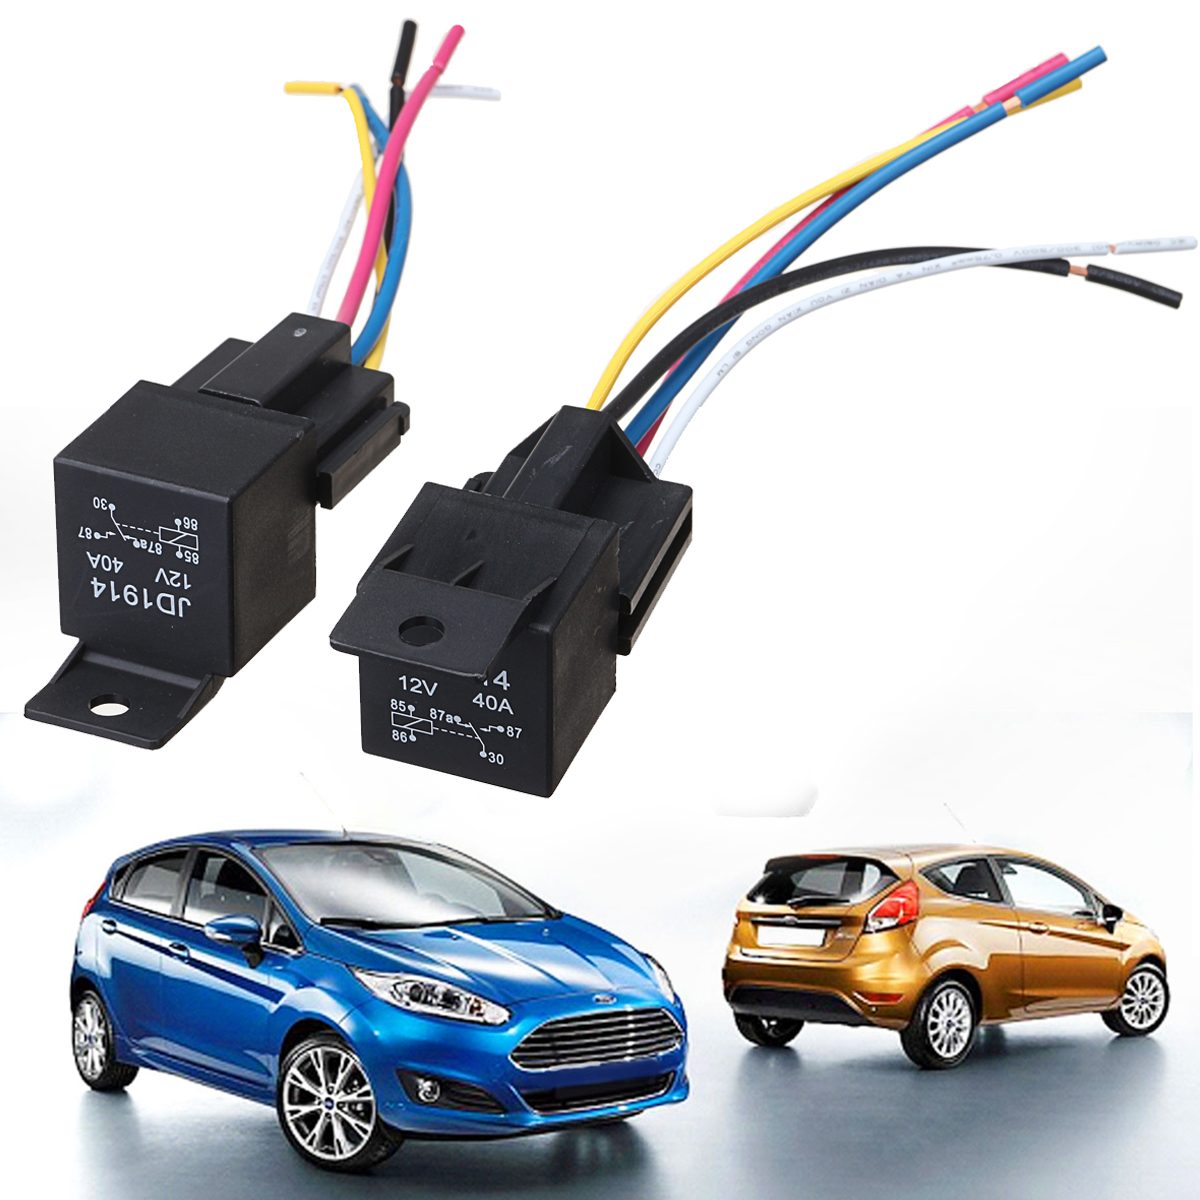 5pcs Car Spdt Automotive Relay Dc 12v 5 Pin 5 Wires W   Harness Socket 30  40 Amp Car Accessories